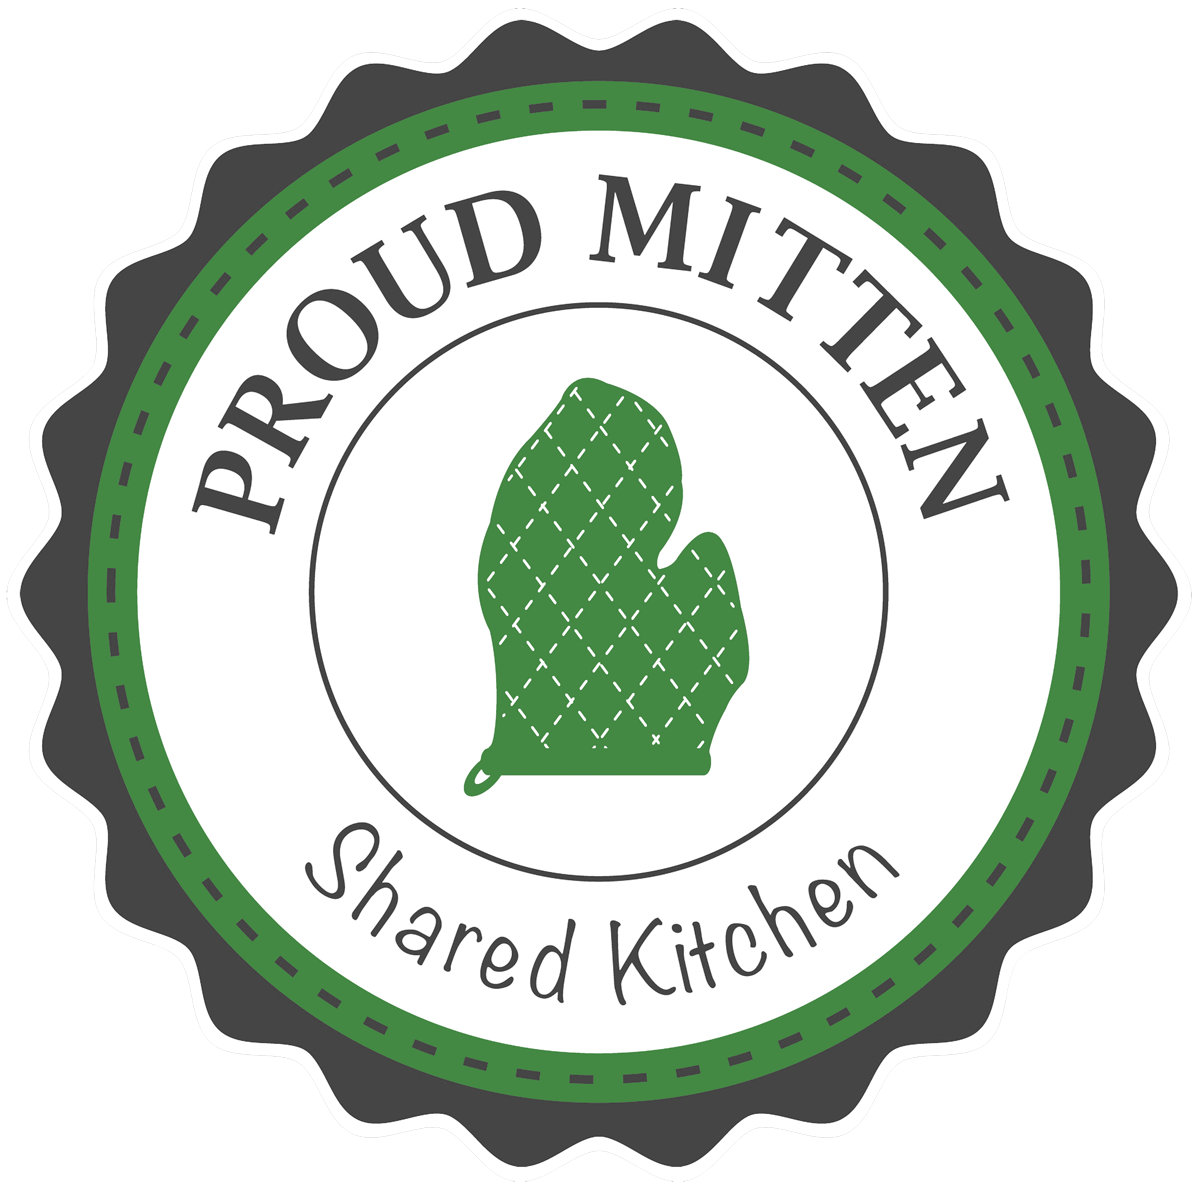 Proud Mitten Shared Kitchen